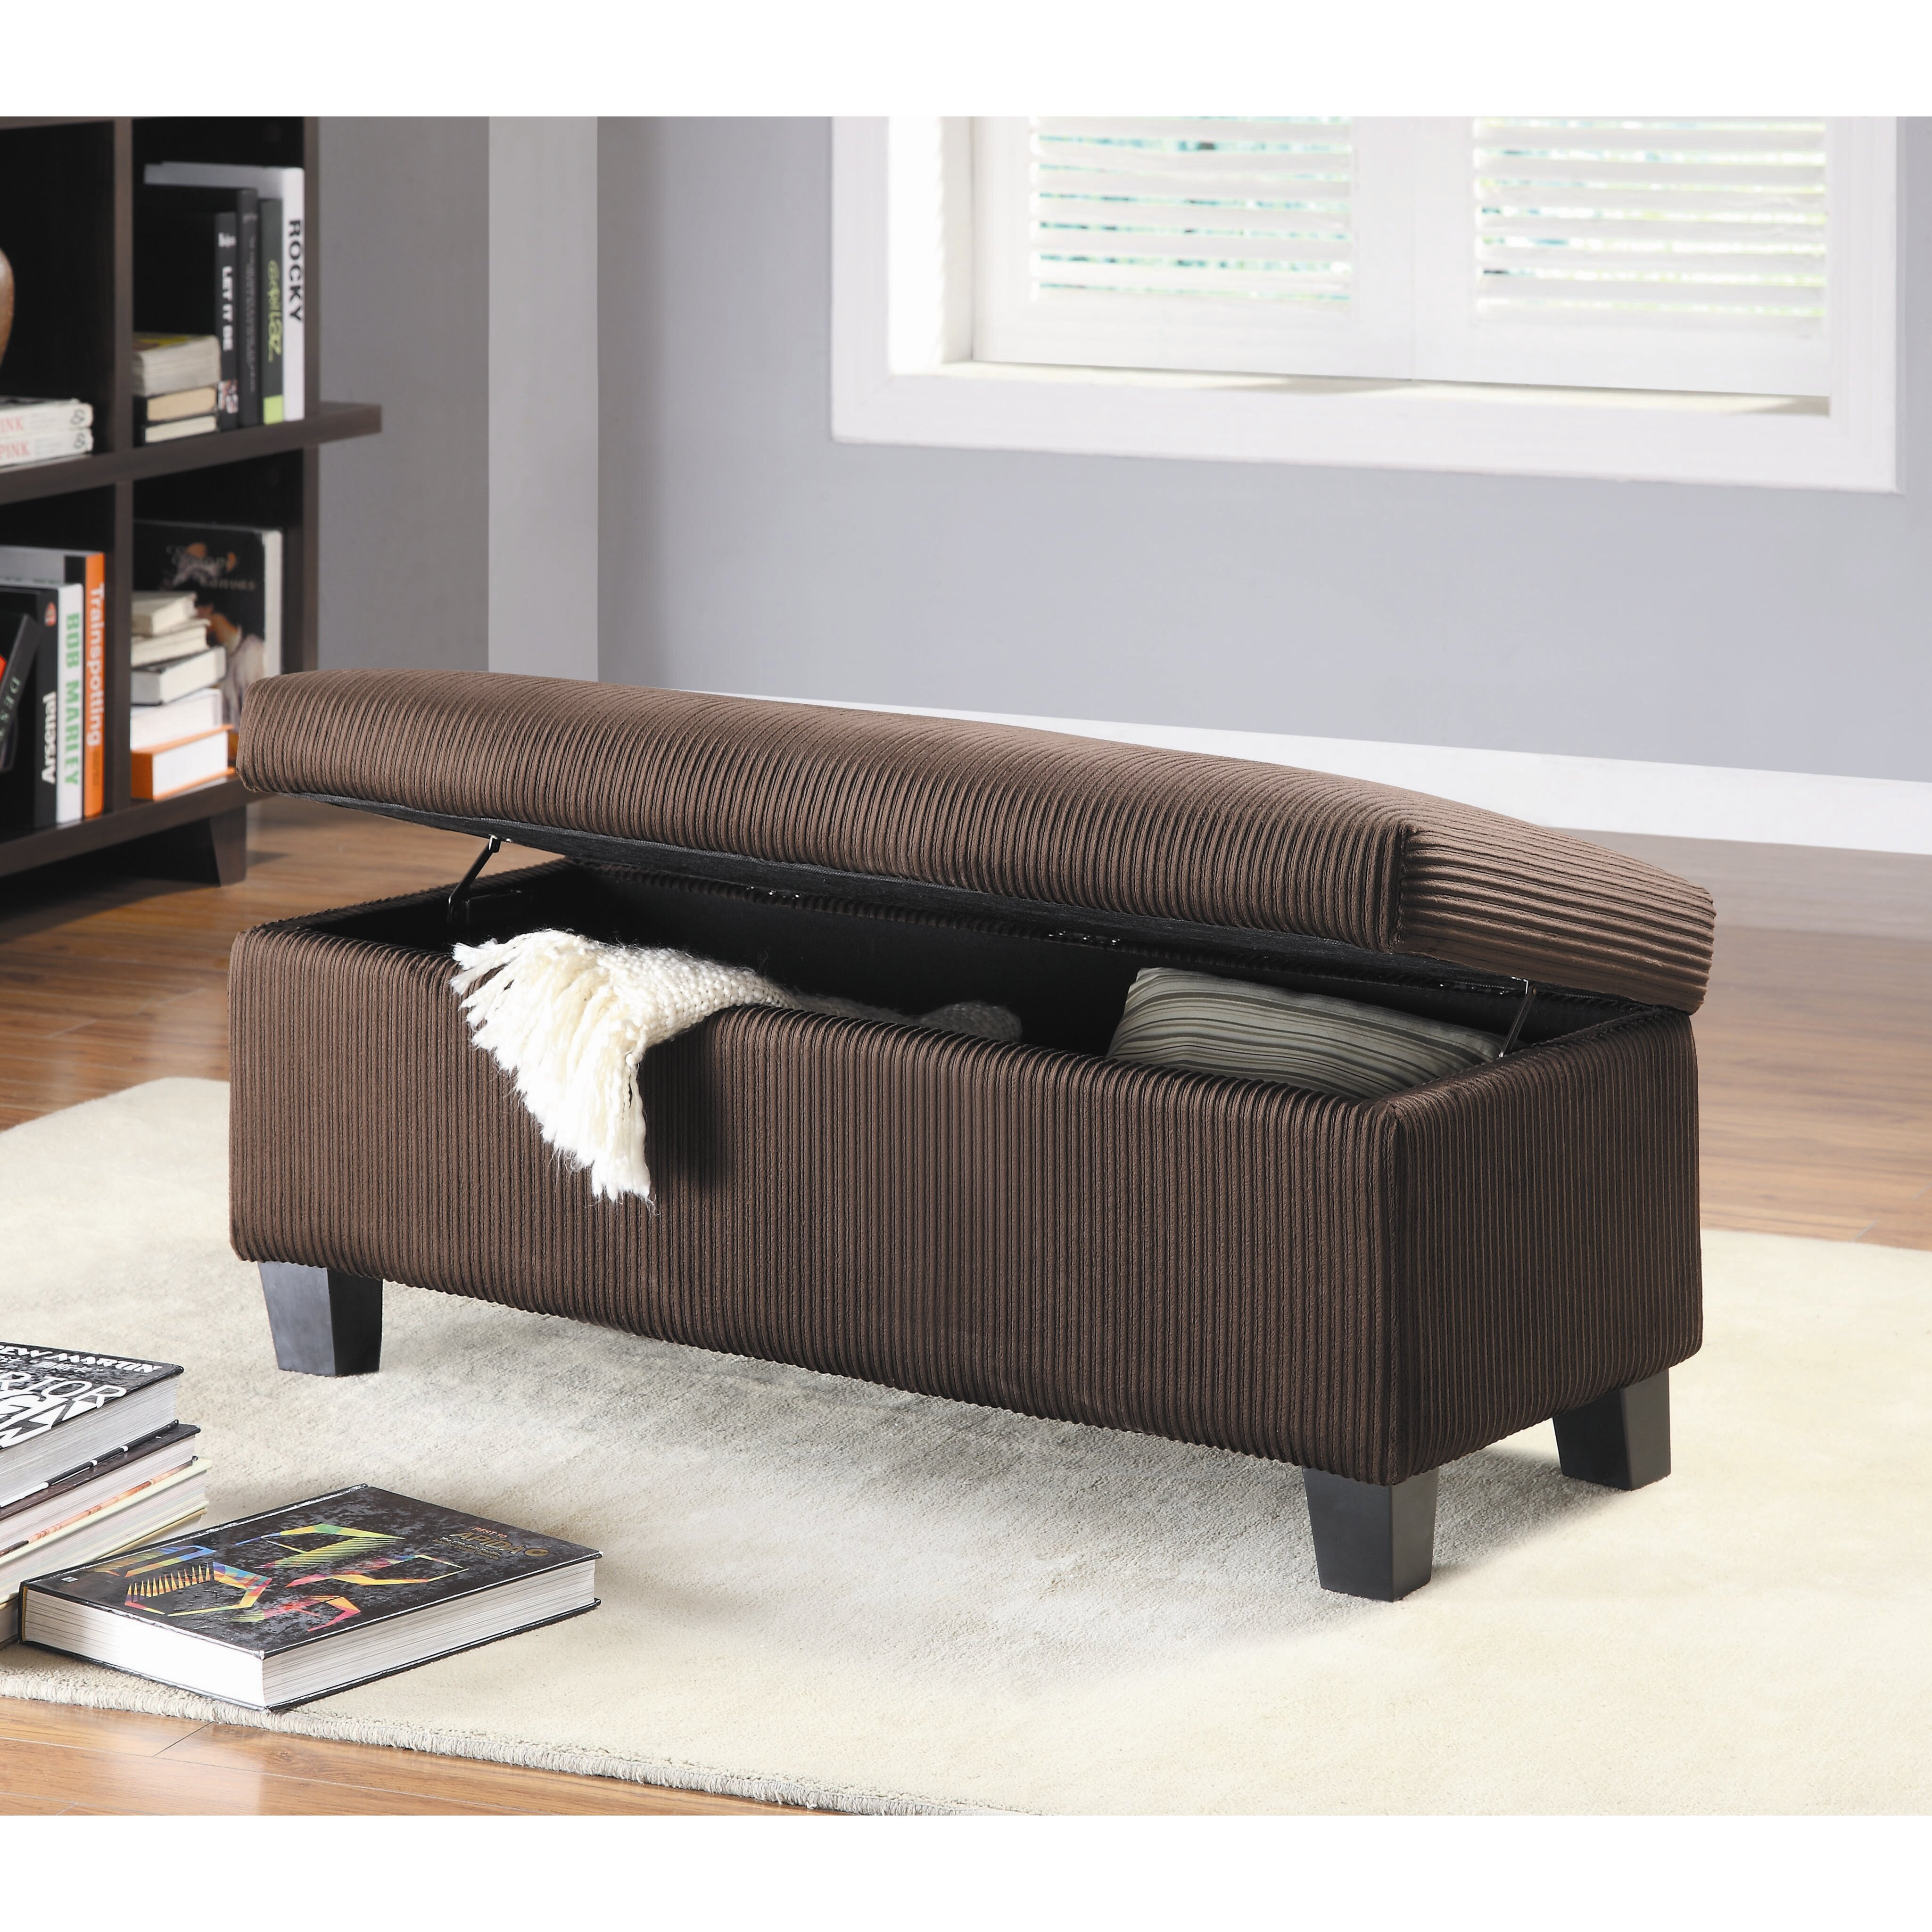 woodhaven hill clair new fabric bedroom storage ottoman